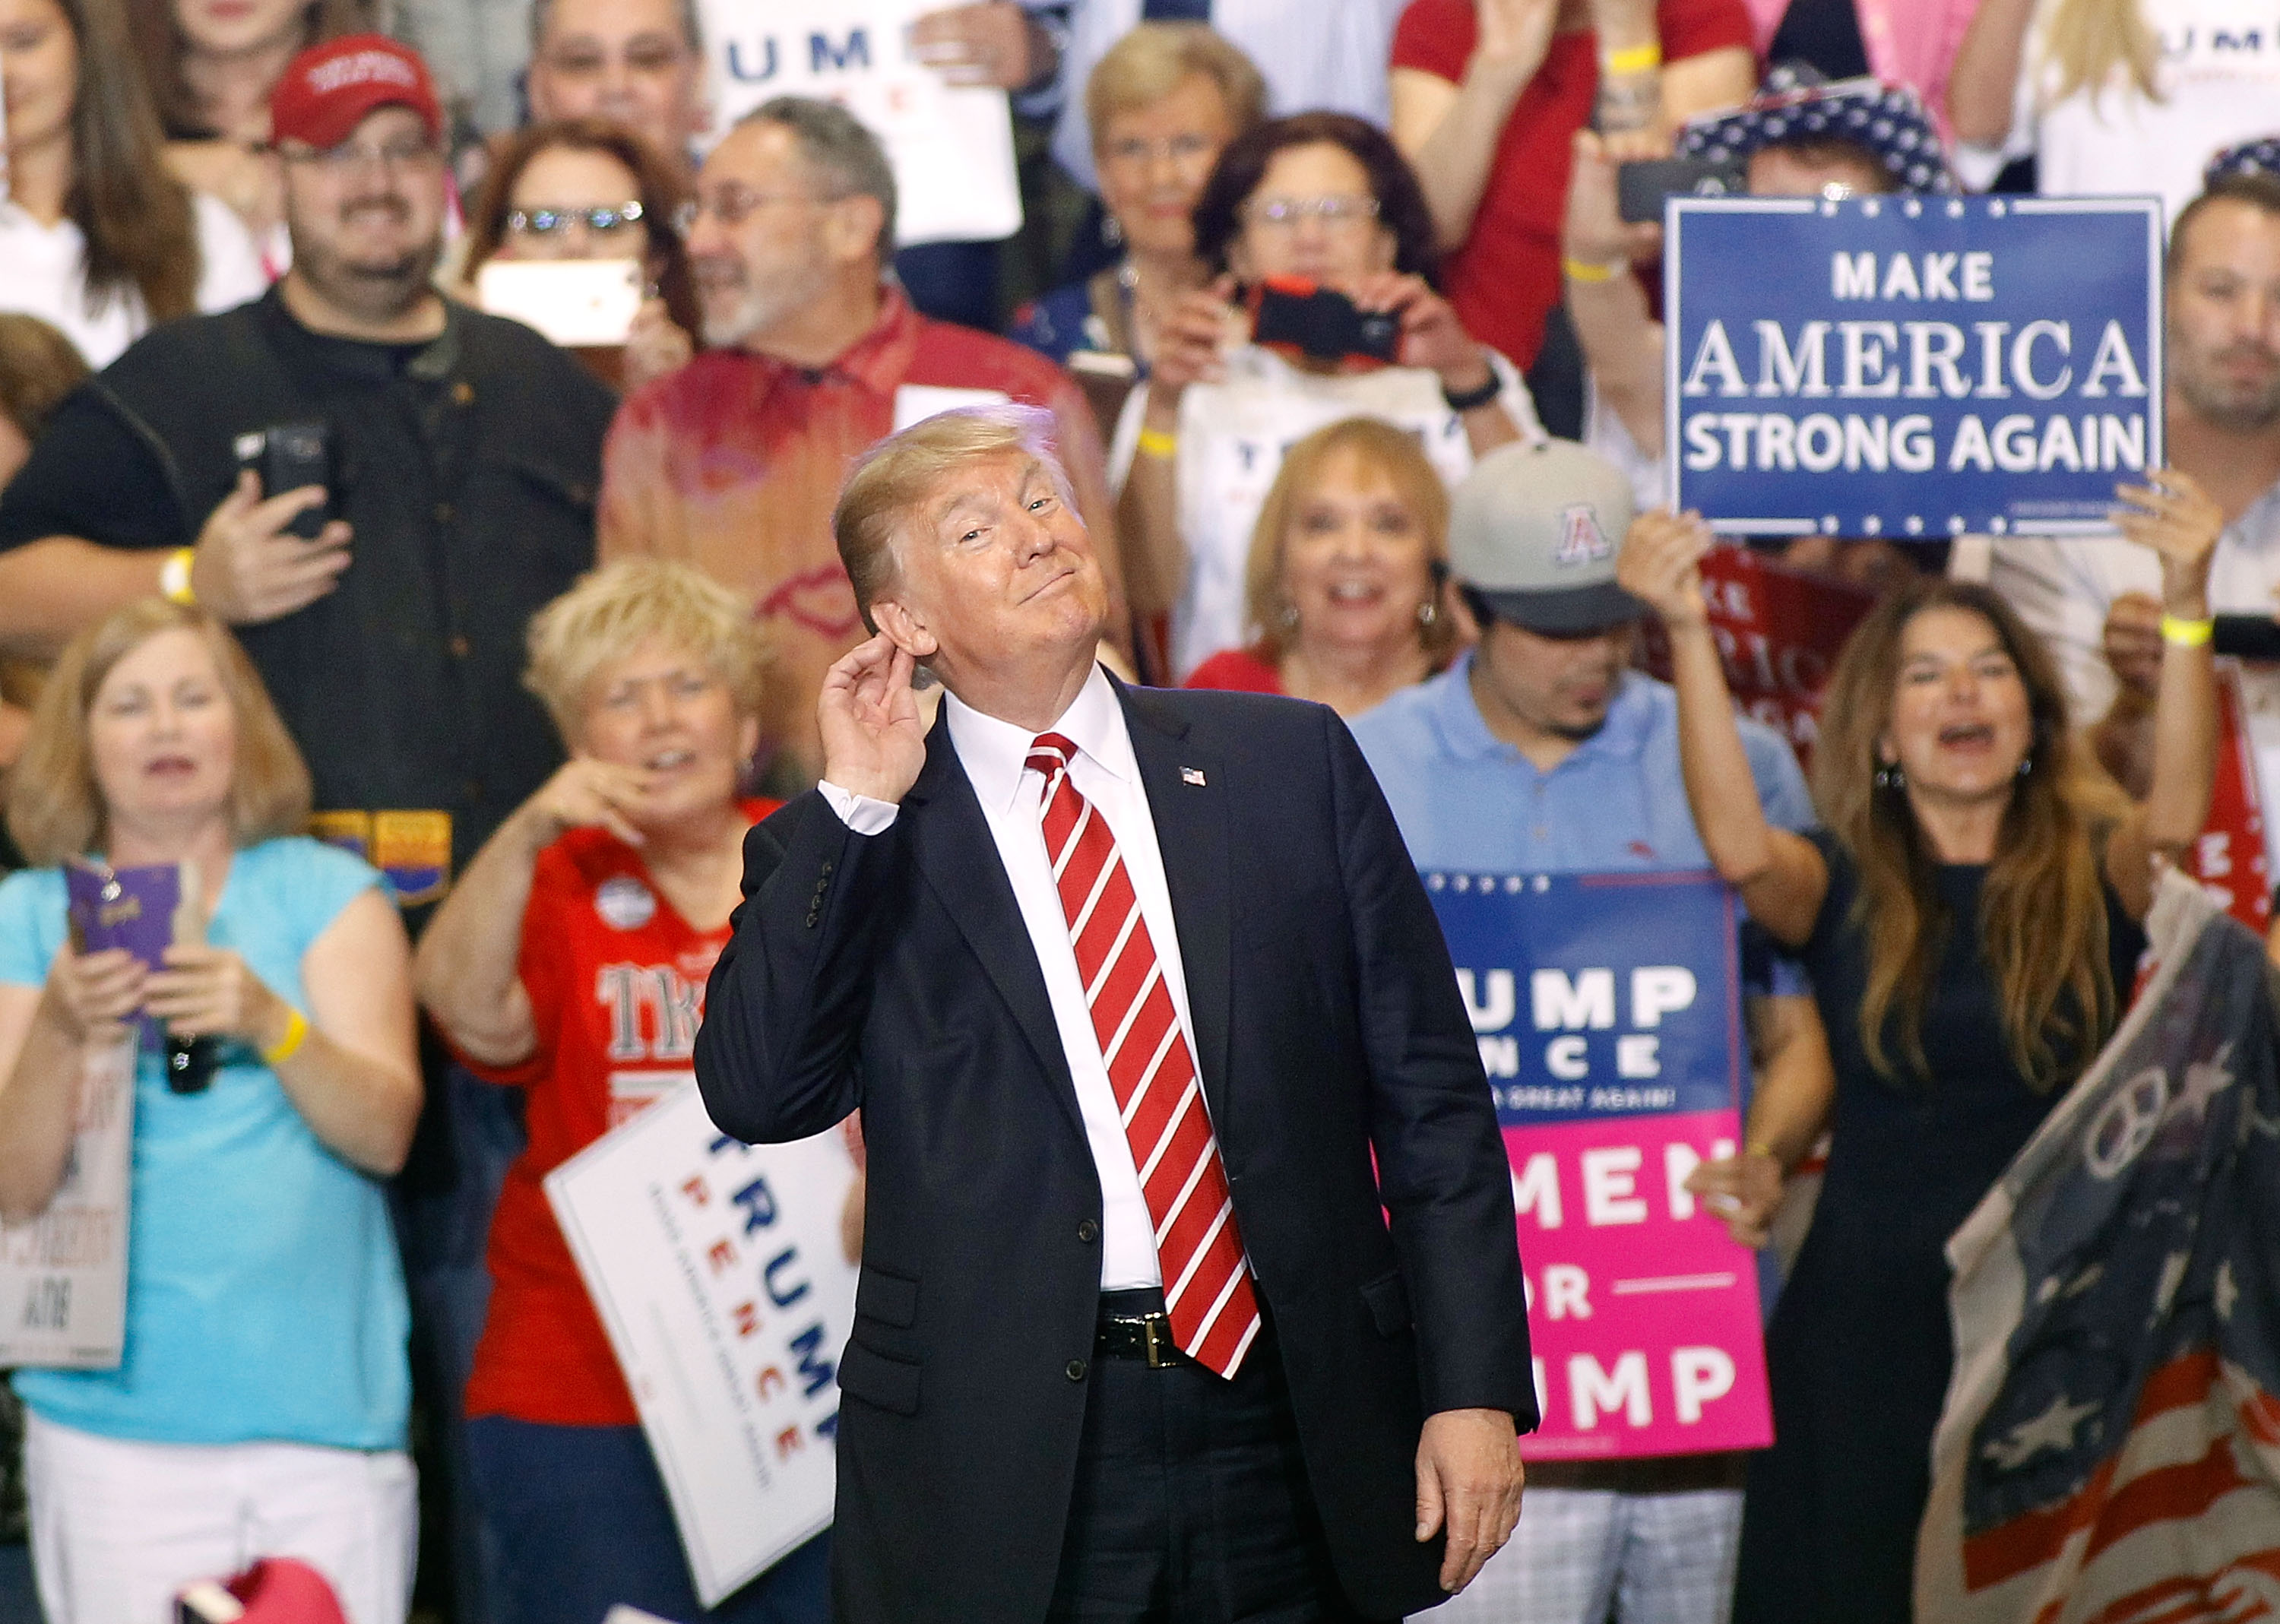 President Donald Trump gestures during a rally at the Phoenix Convention Center on Aug. 22, 2017 in Phoenix, Arizona. (Ralph Freso/Getty Images)